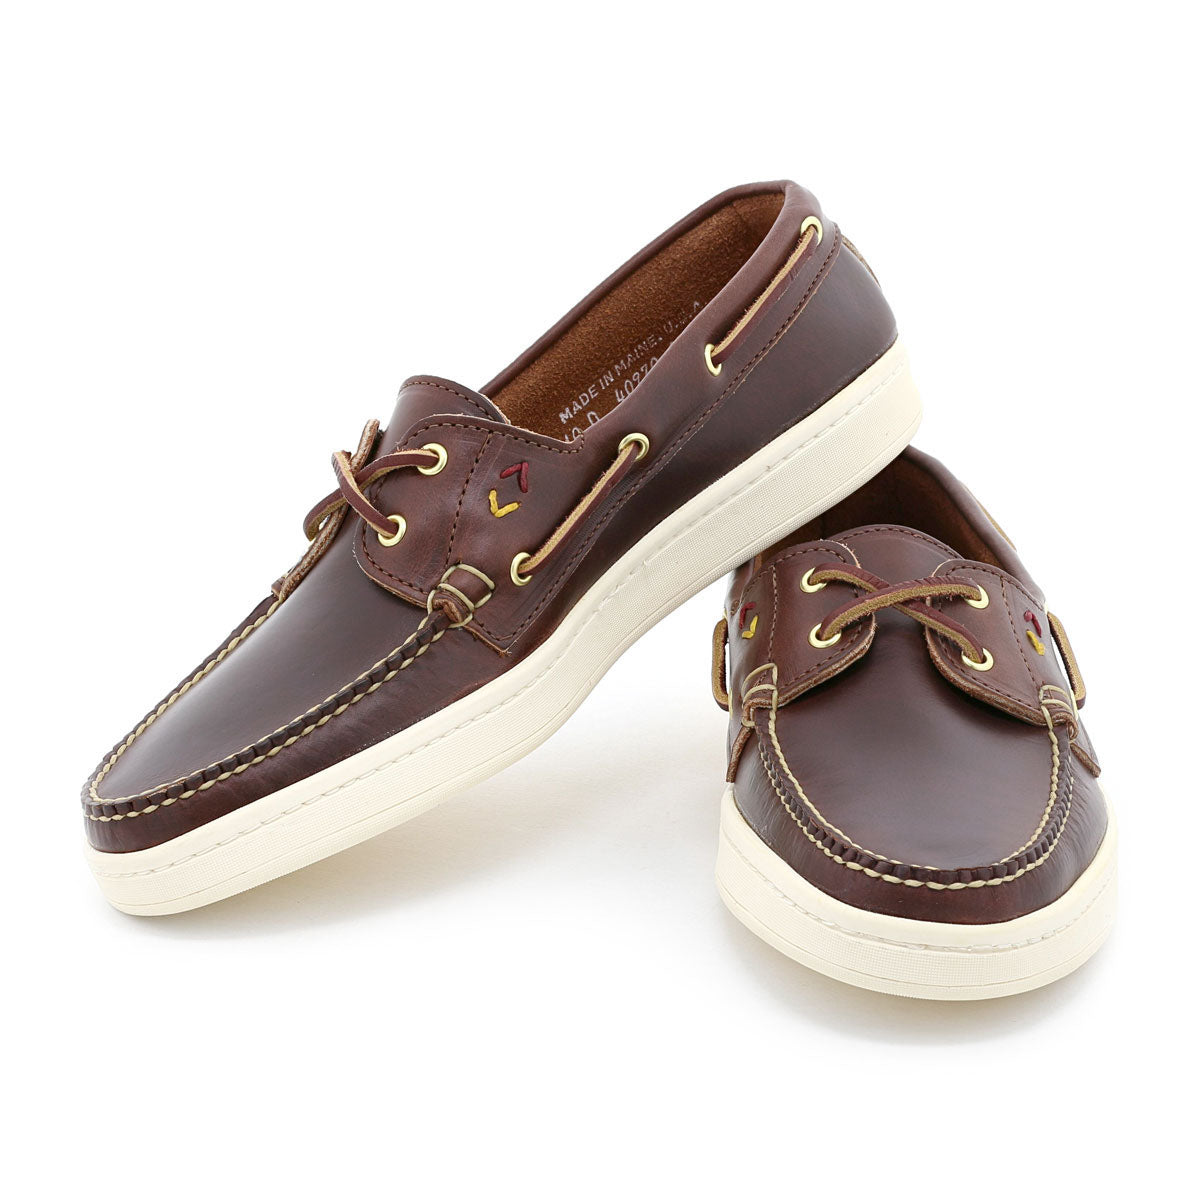 Traveler Boat Shoe - Dark Brown Chromexcel